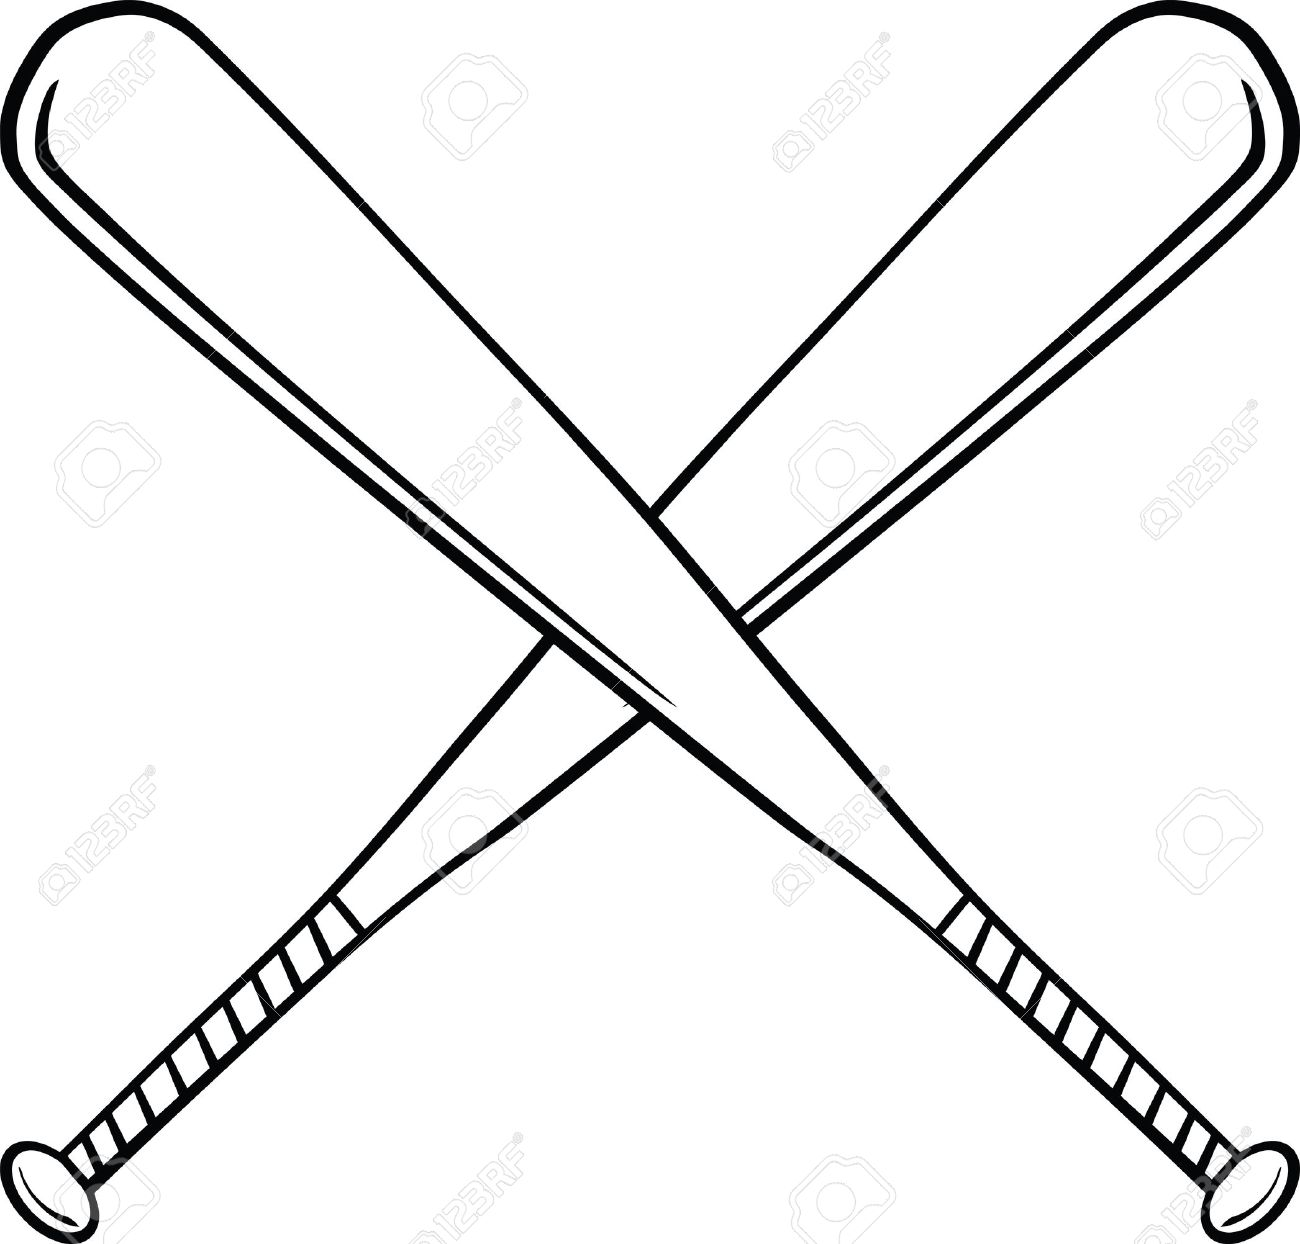 black and white crossed baseball bats illustration isolated rh 123rf com